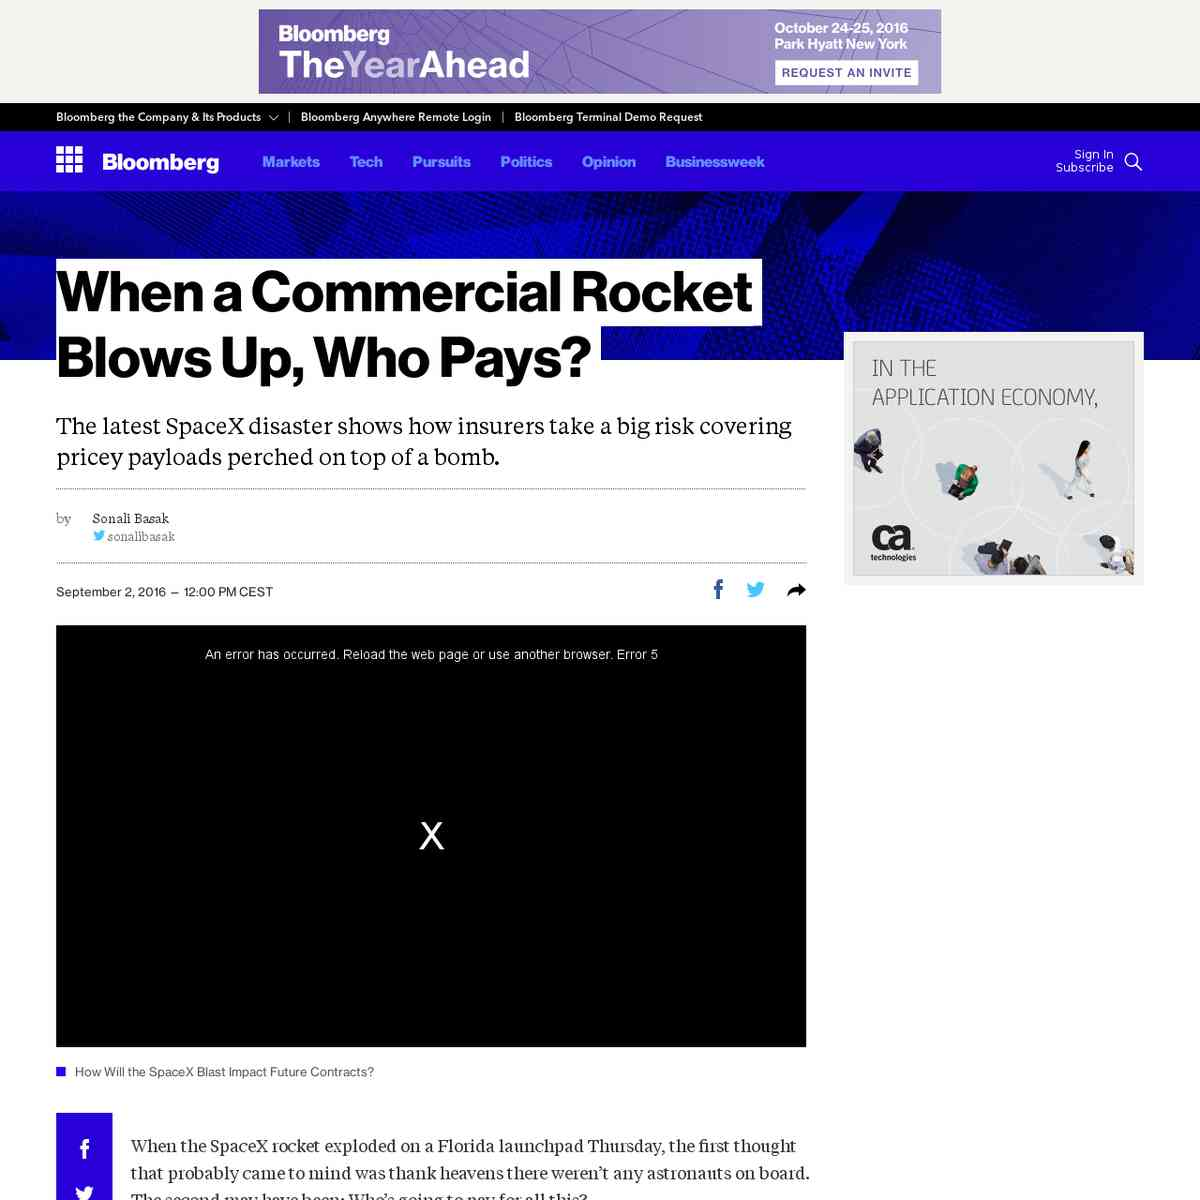 When a Commercial Rocket Blows Up, Who Pays? - Bloomberg